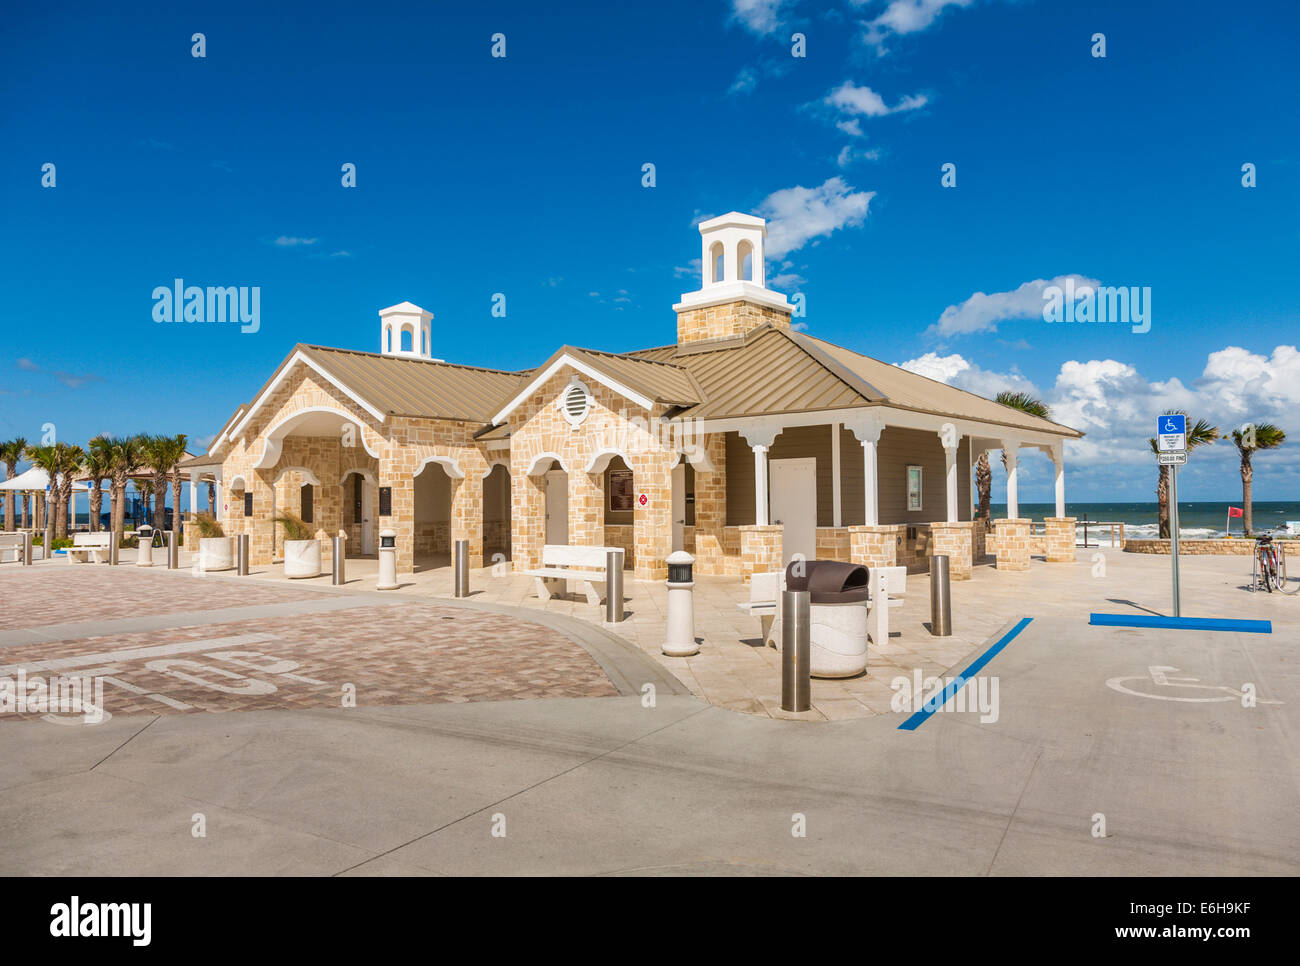 Modern upscale public restroom and shower facilities on the beach at Daytona Beach Florida - Stock Image